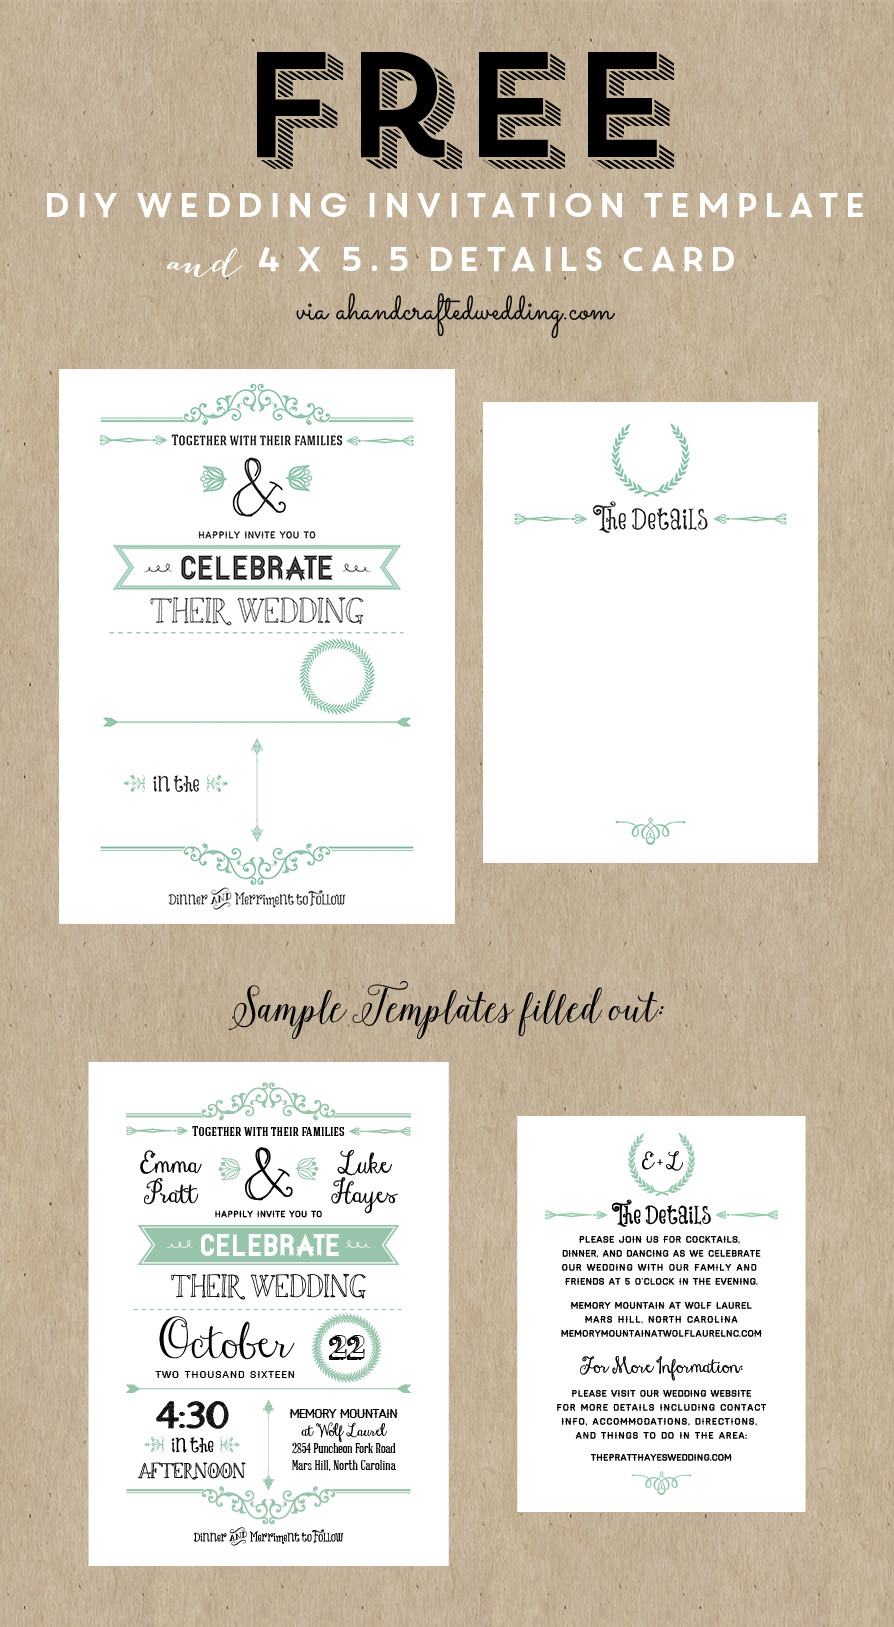 Best ideas about DIY Wedding Invitation Templates . Save or Pin Best 25 Free wedding invitation templates ideas on Now.